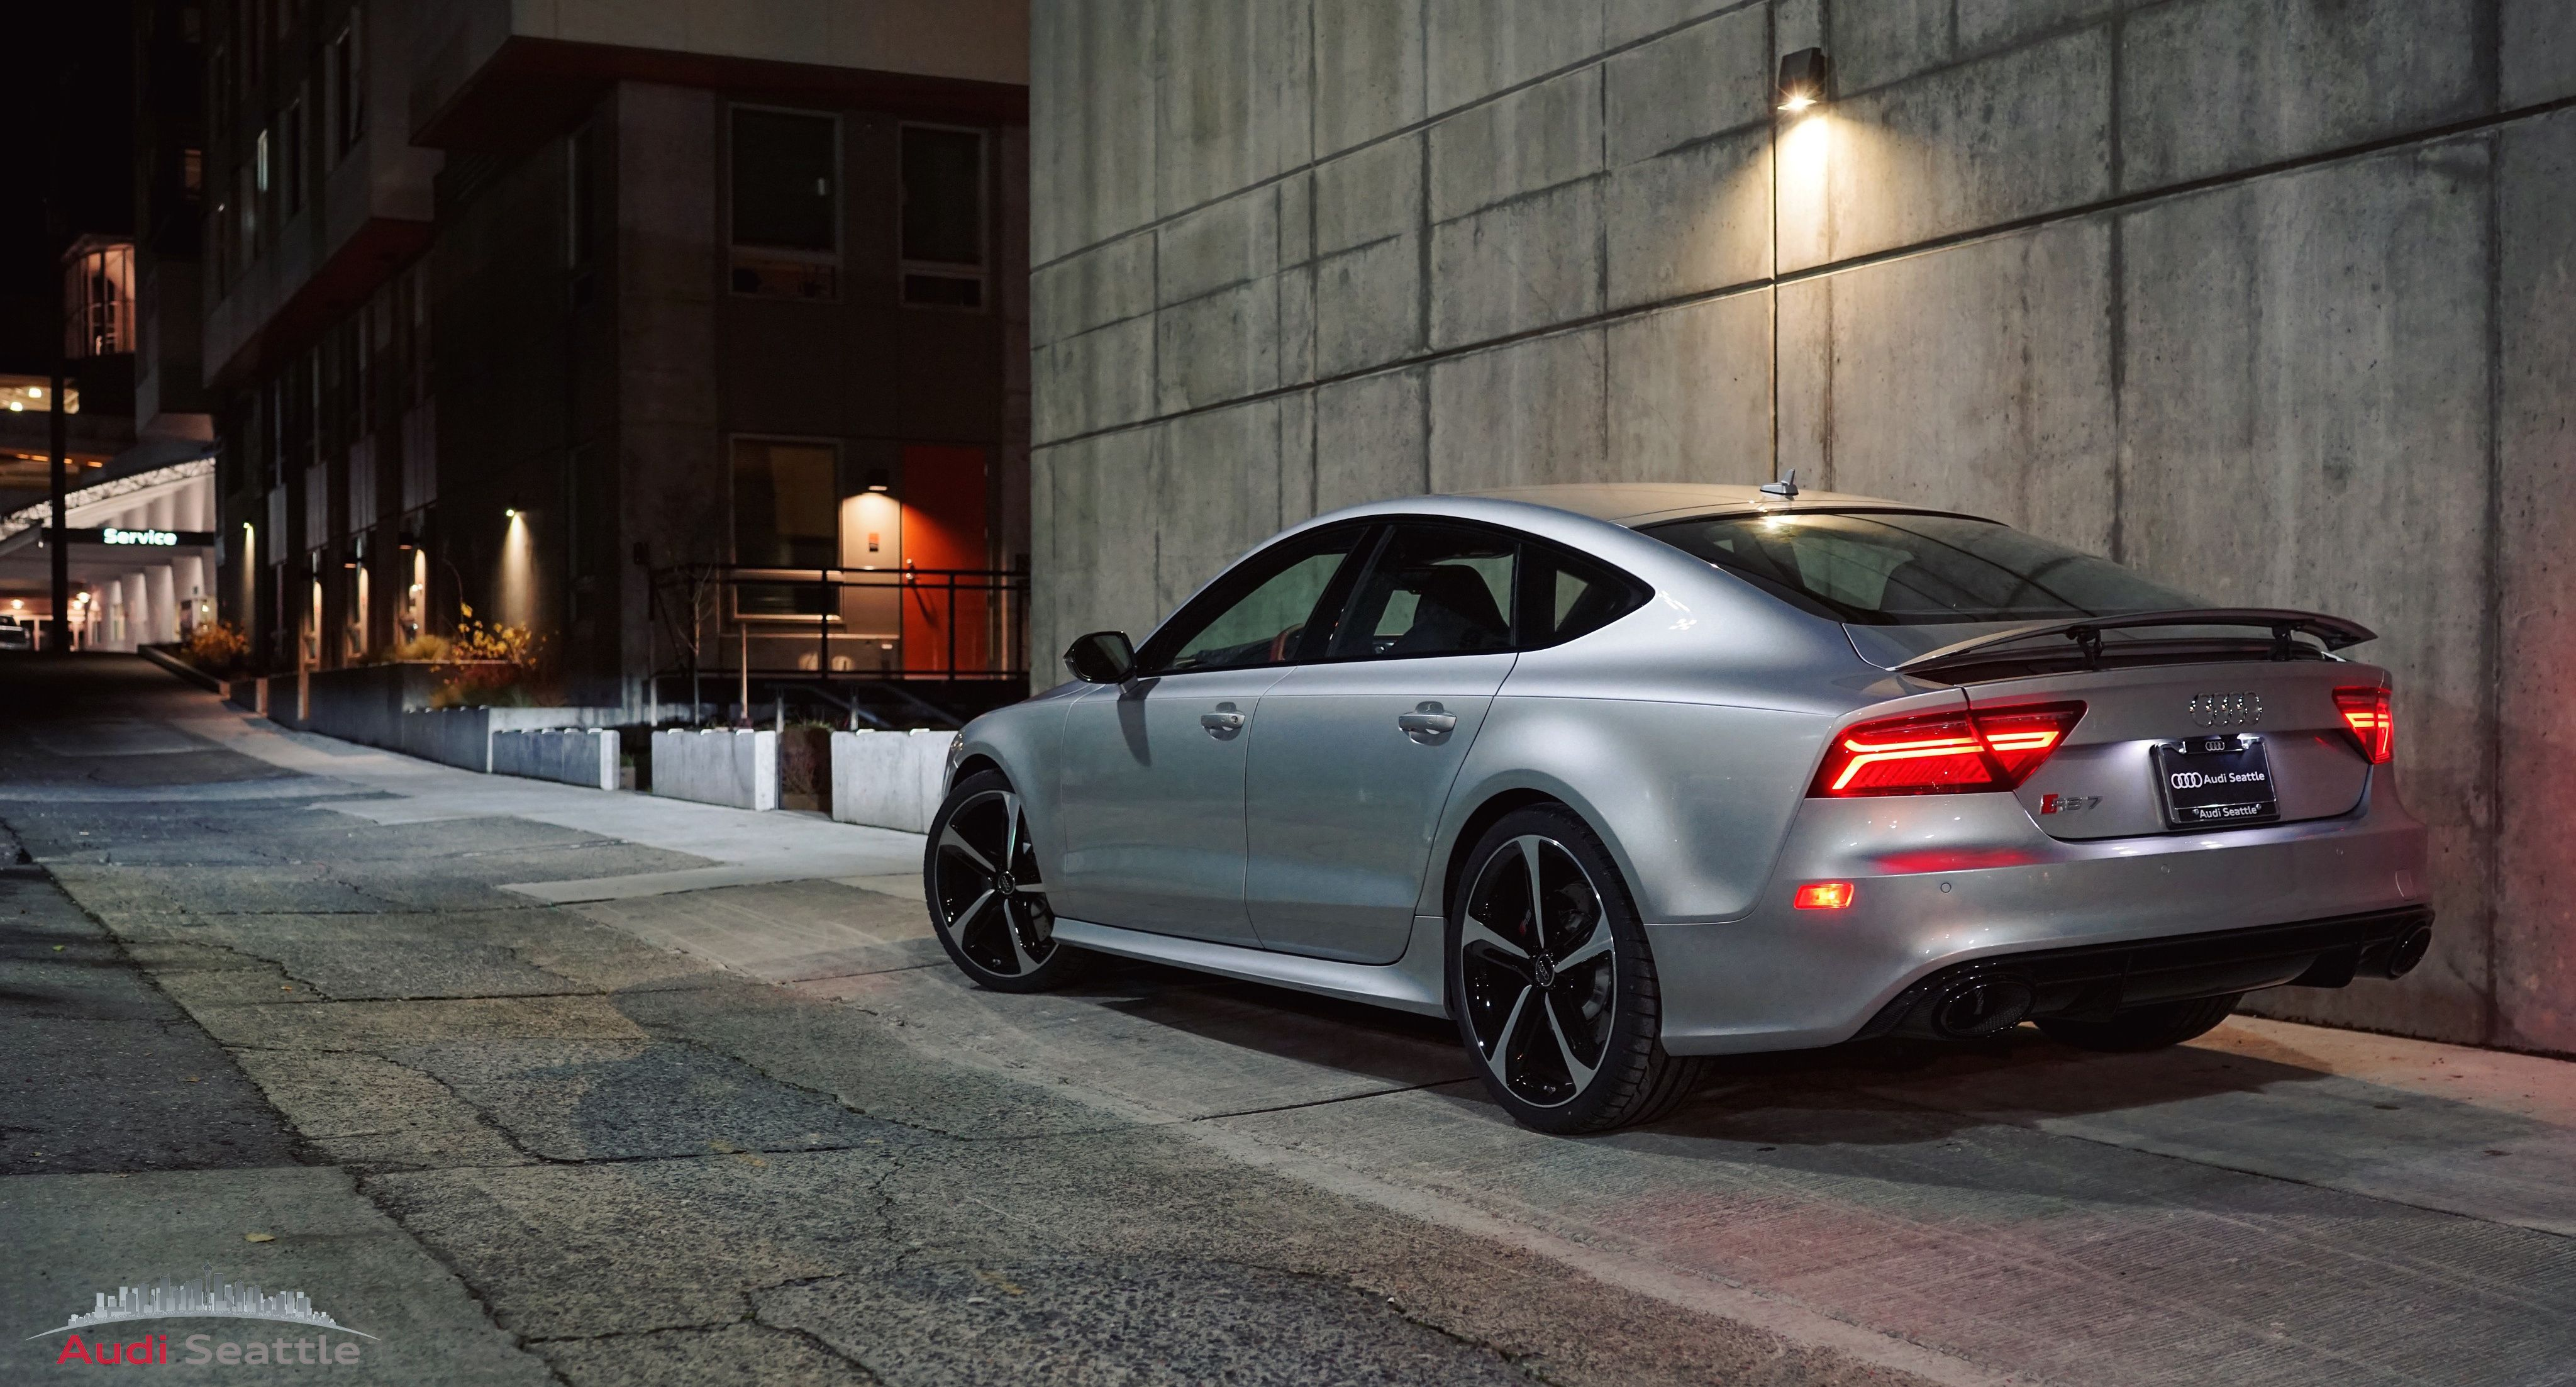 Start your day off right with this RS7 from last night Color